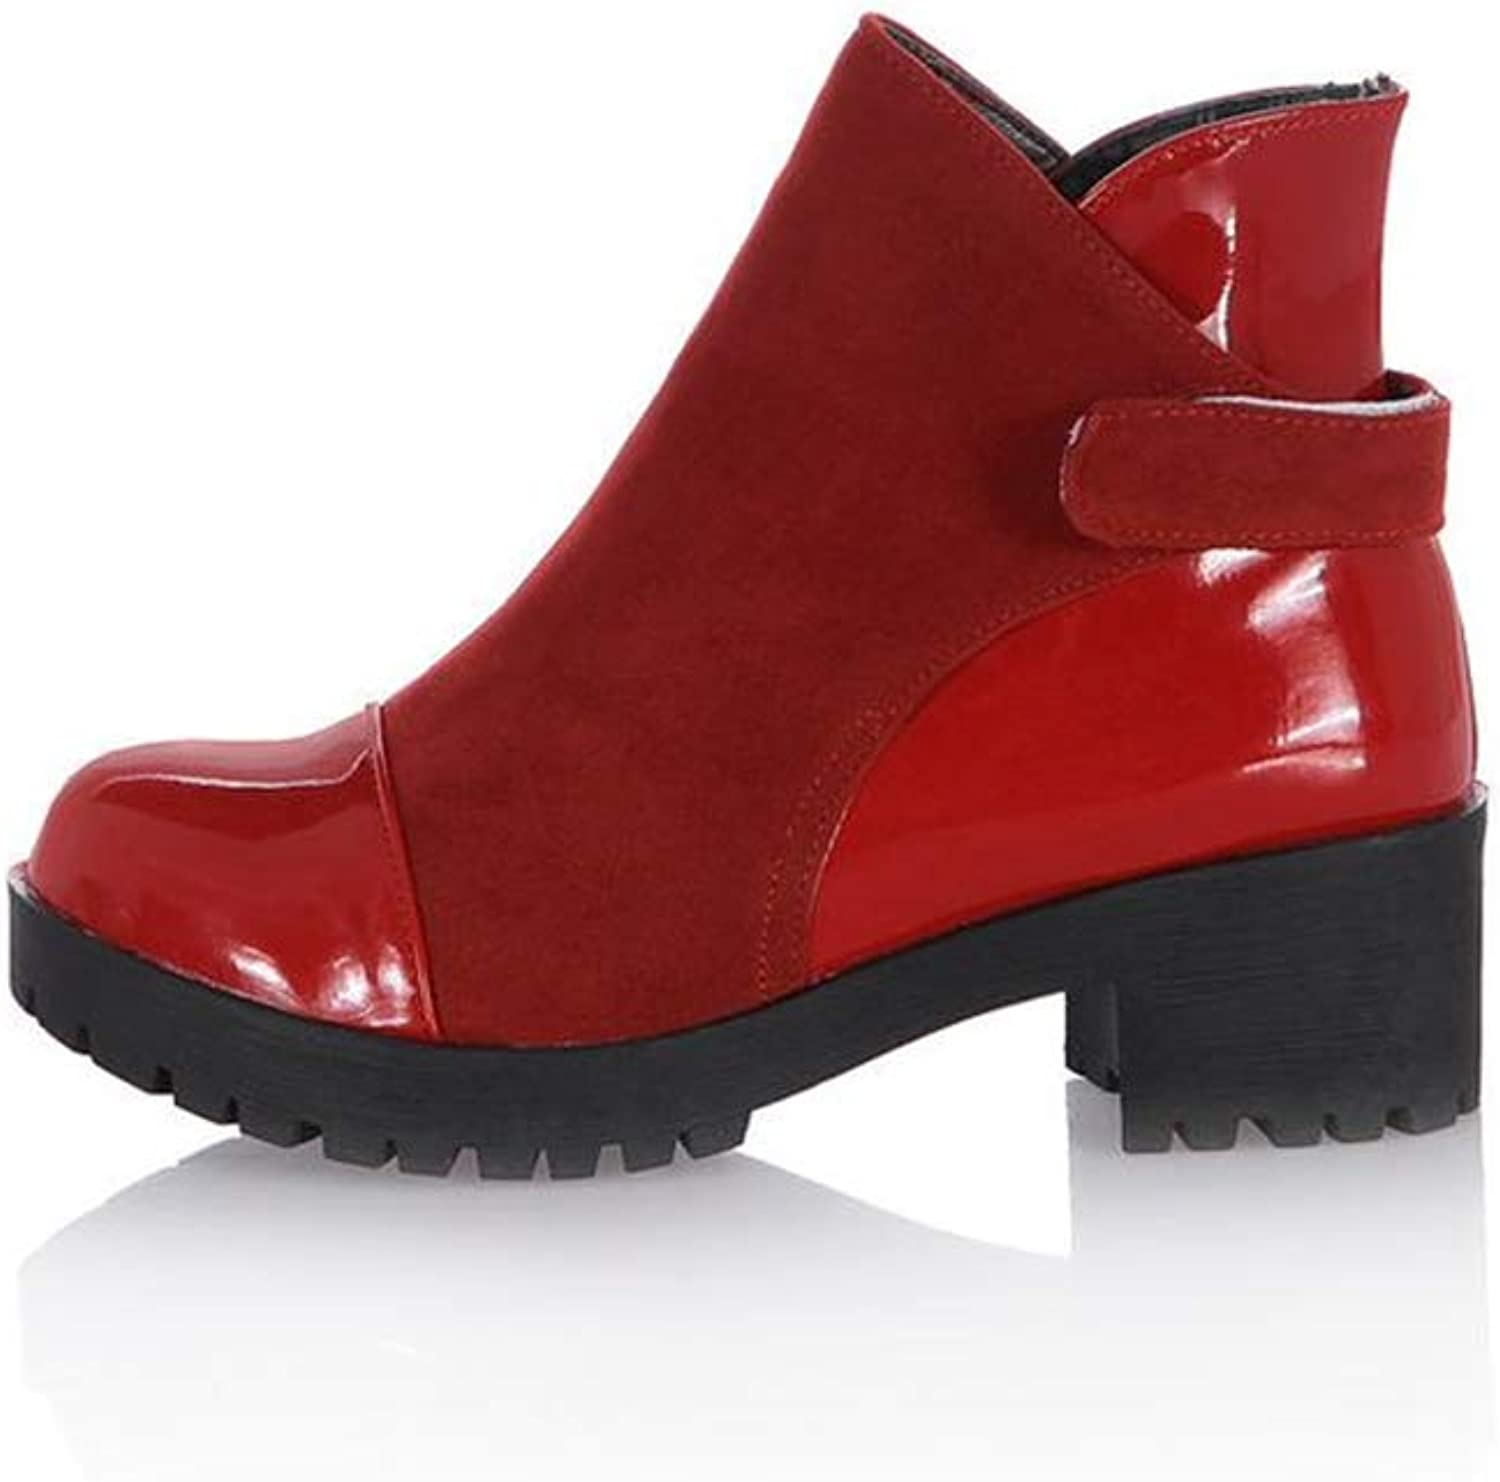 Casual Western Ankle Bootie - Comfortable Closed Toe shoes - Women Boot